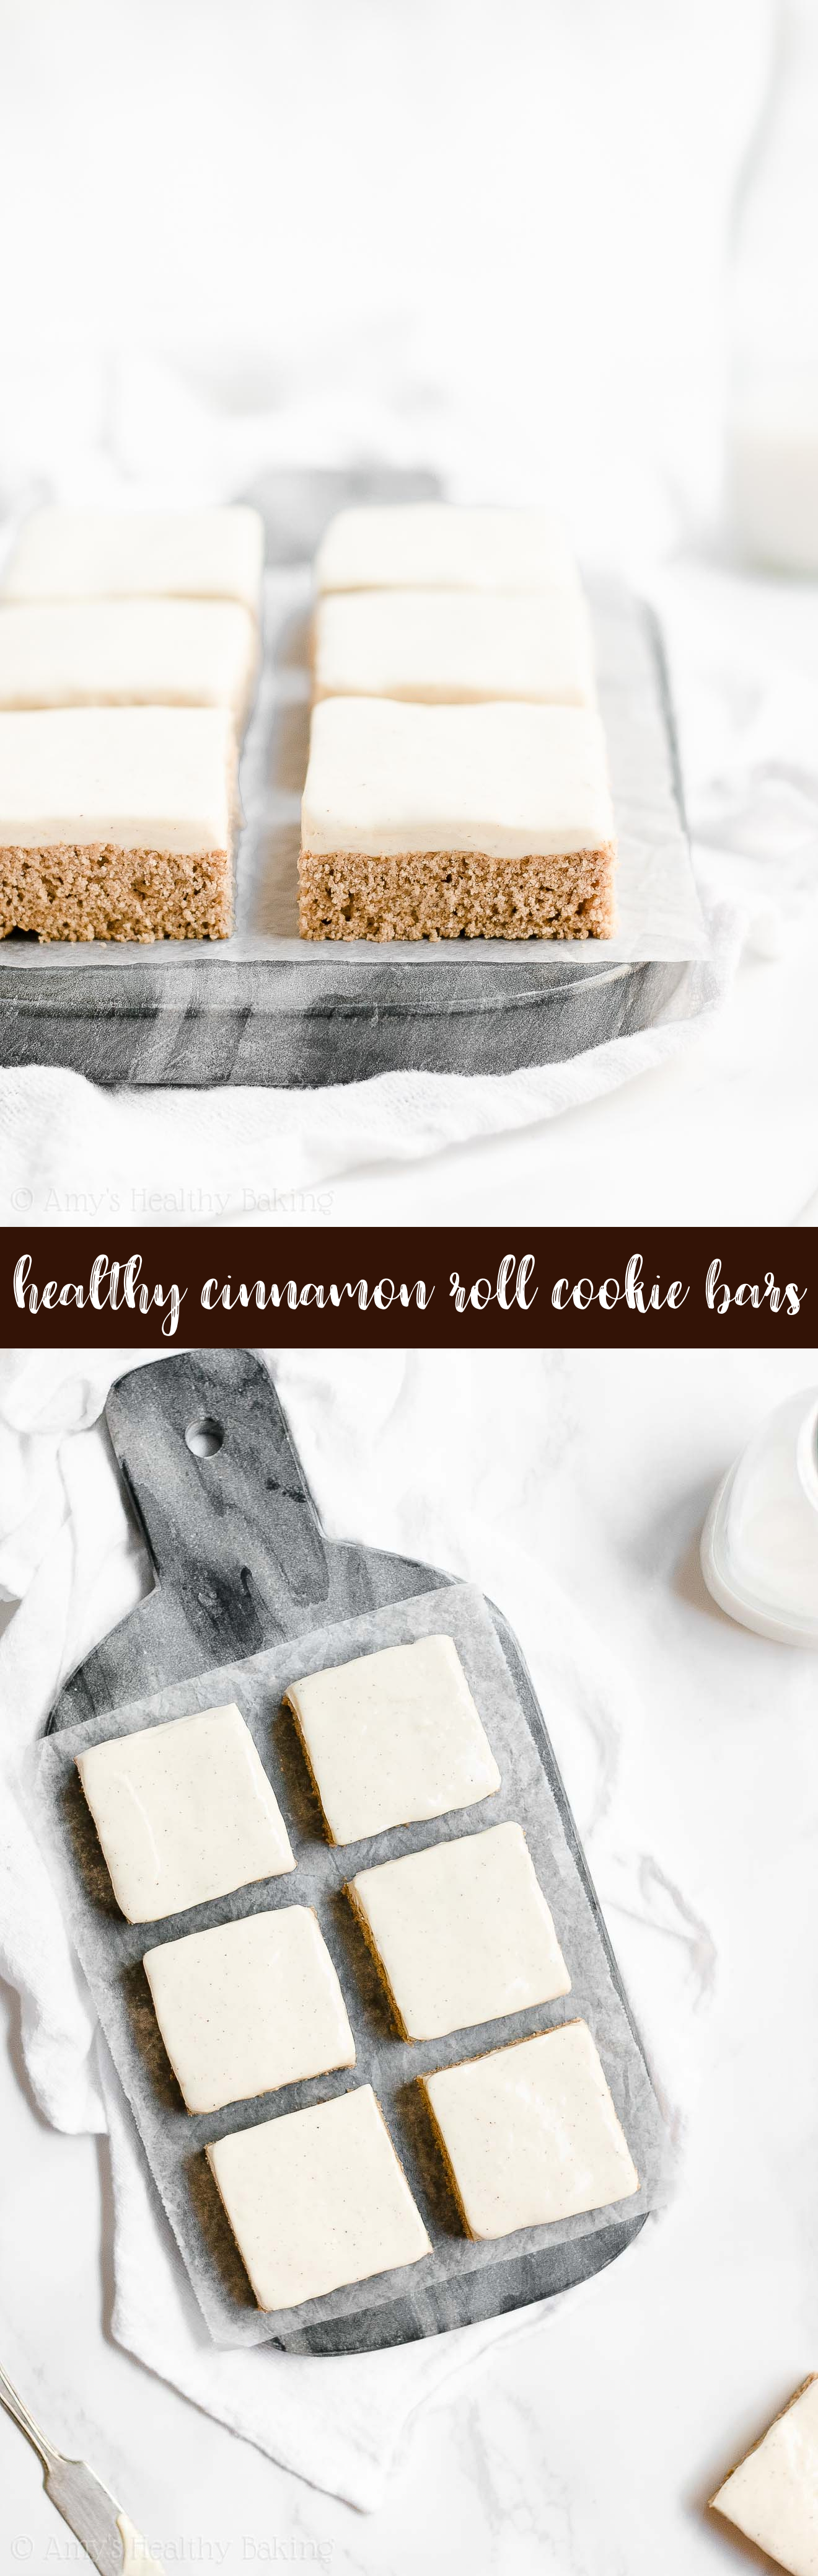 Best Ever Healthy Cinnamon Roll Blondie Cookie Bars